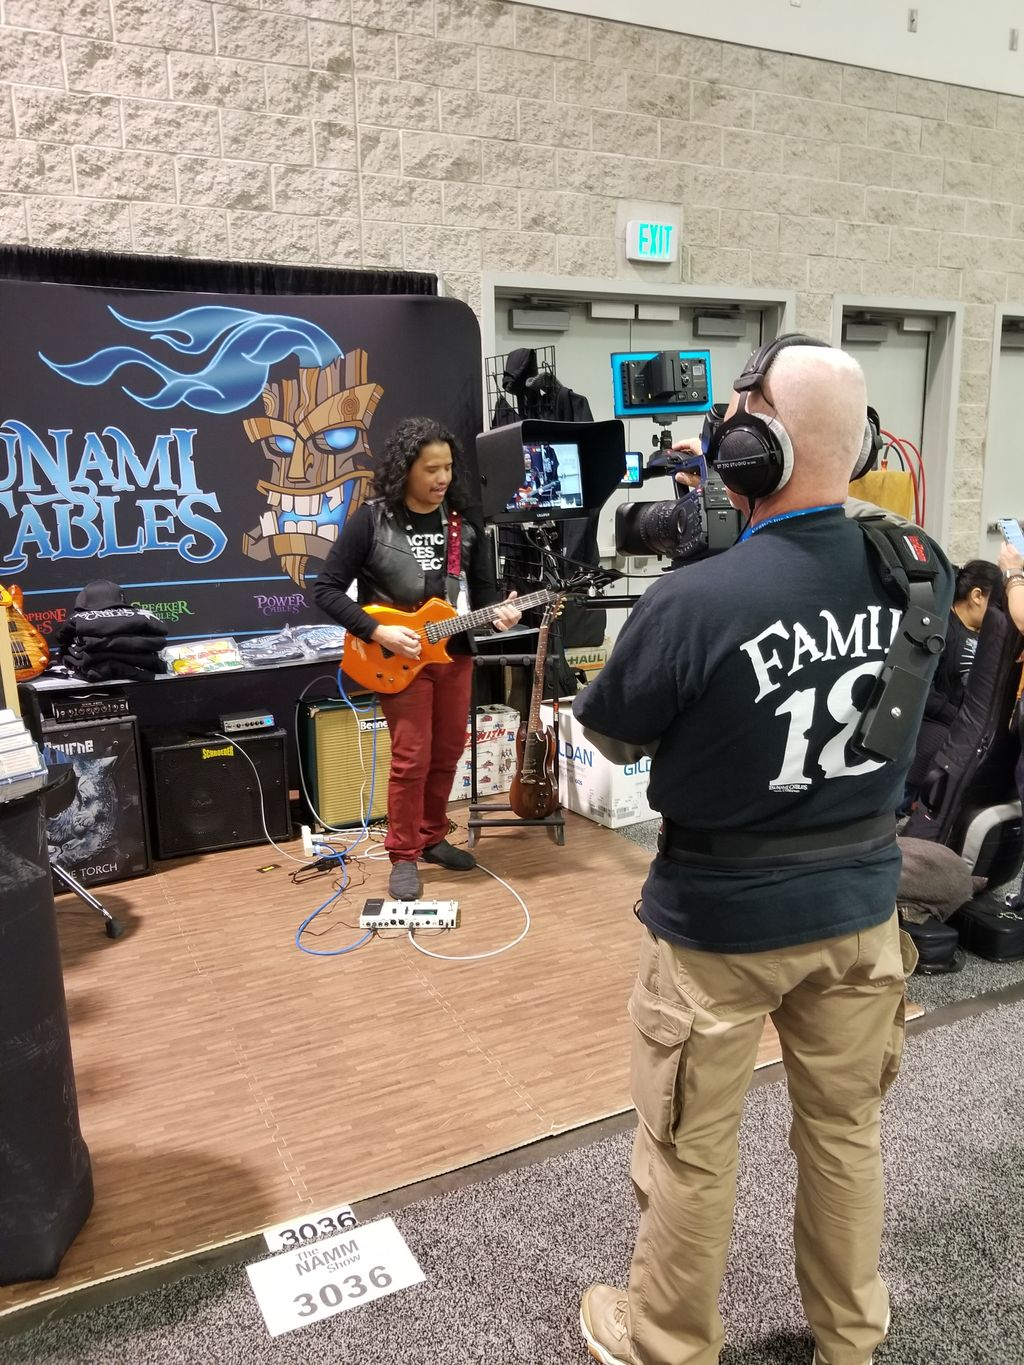 NAMM 2020 for Tsunami Cables